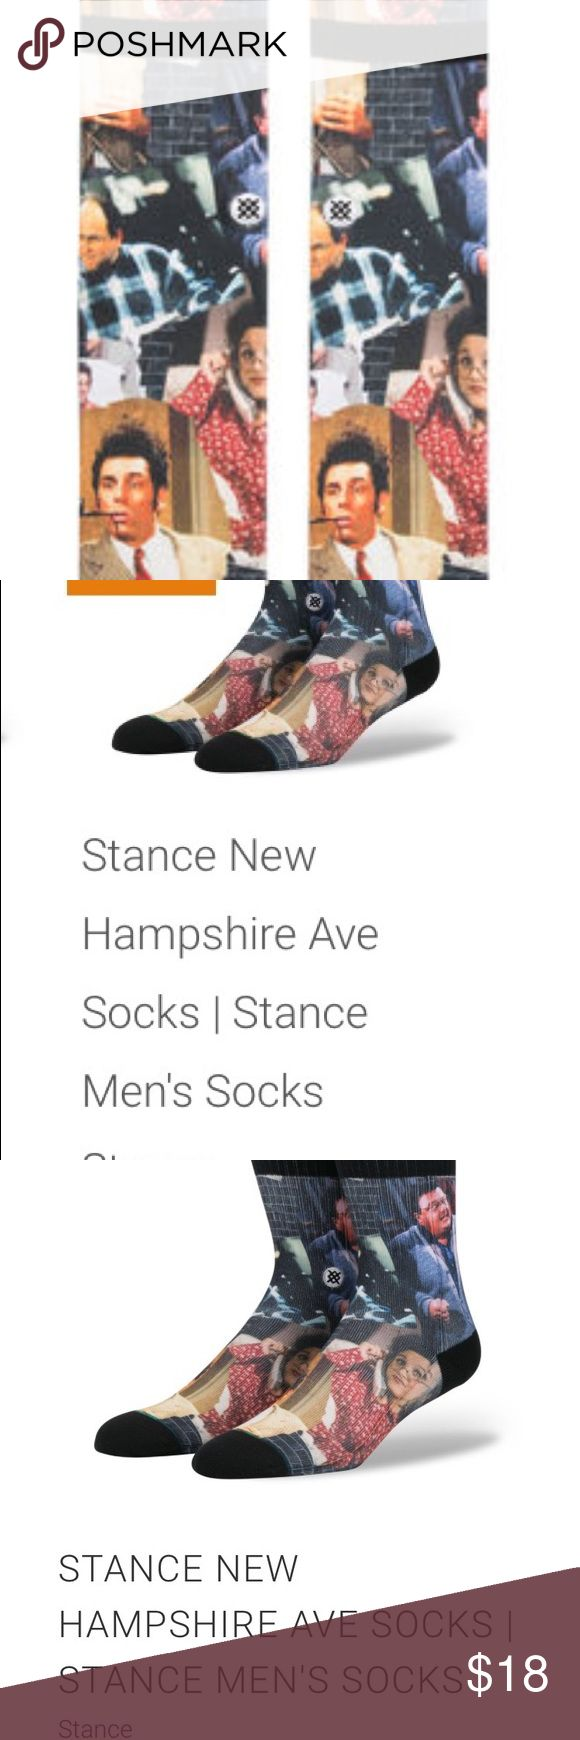 LIMITED EDITION SEINFELD STANCE!!! LIMITED EDITION SEINFELD STANCE!!! Retailing up to $35 online 😱 Get yours today!!! Stance Underwear & Socks Casual Socks